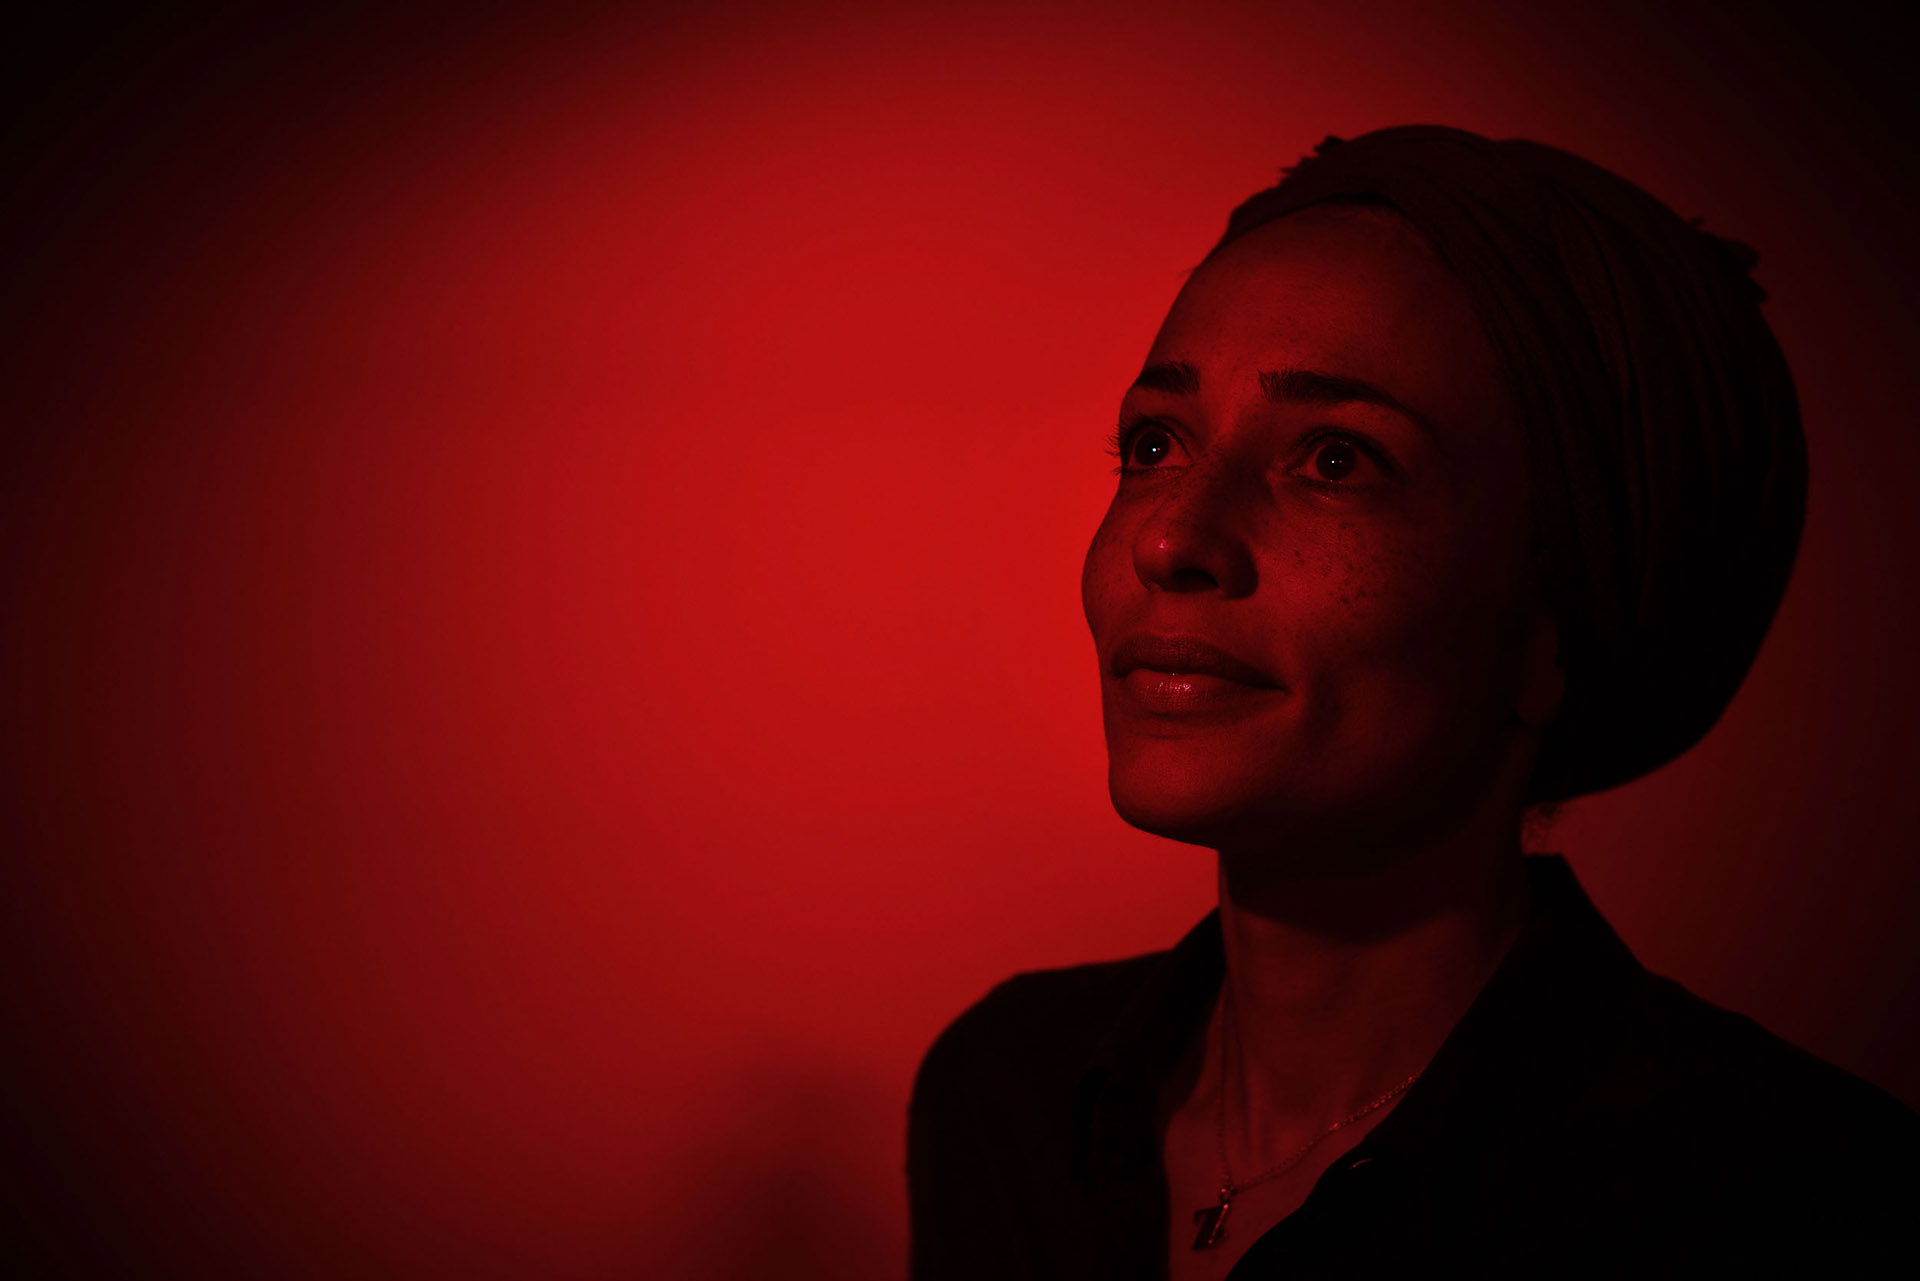 Portraiture Manchester Photographer - Artists & Actors.  Photograph with red lighting of Writer Zadie Smith at Manchester Literary Festival photographer manchesterphotographer.com